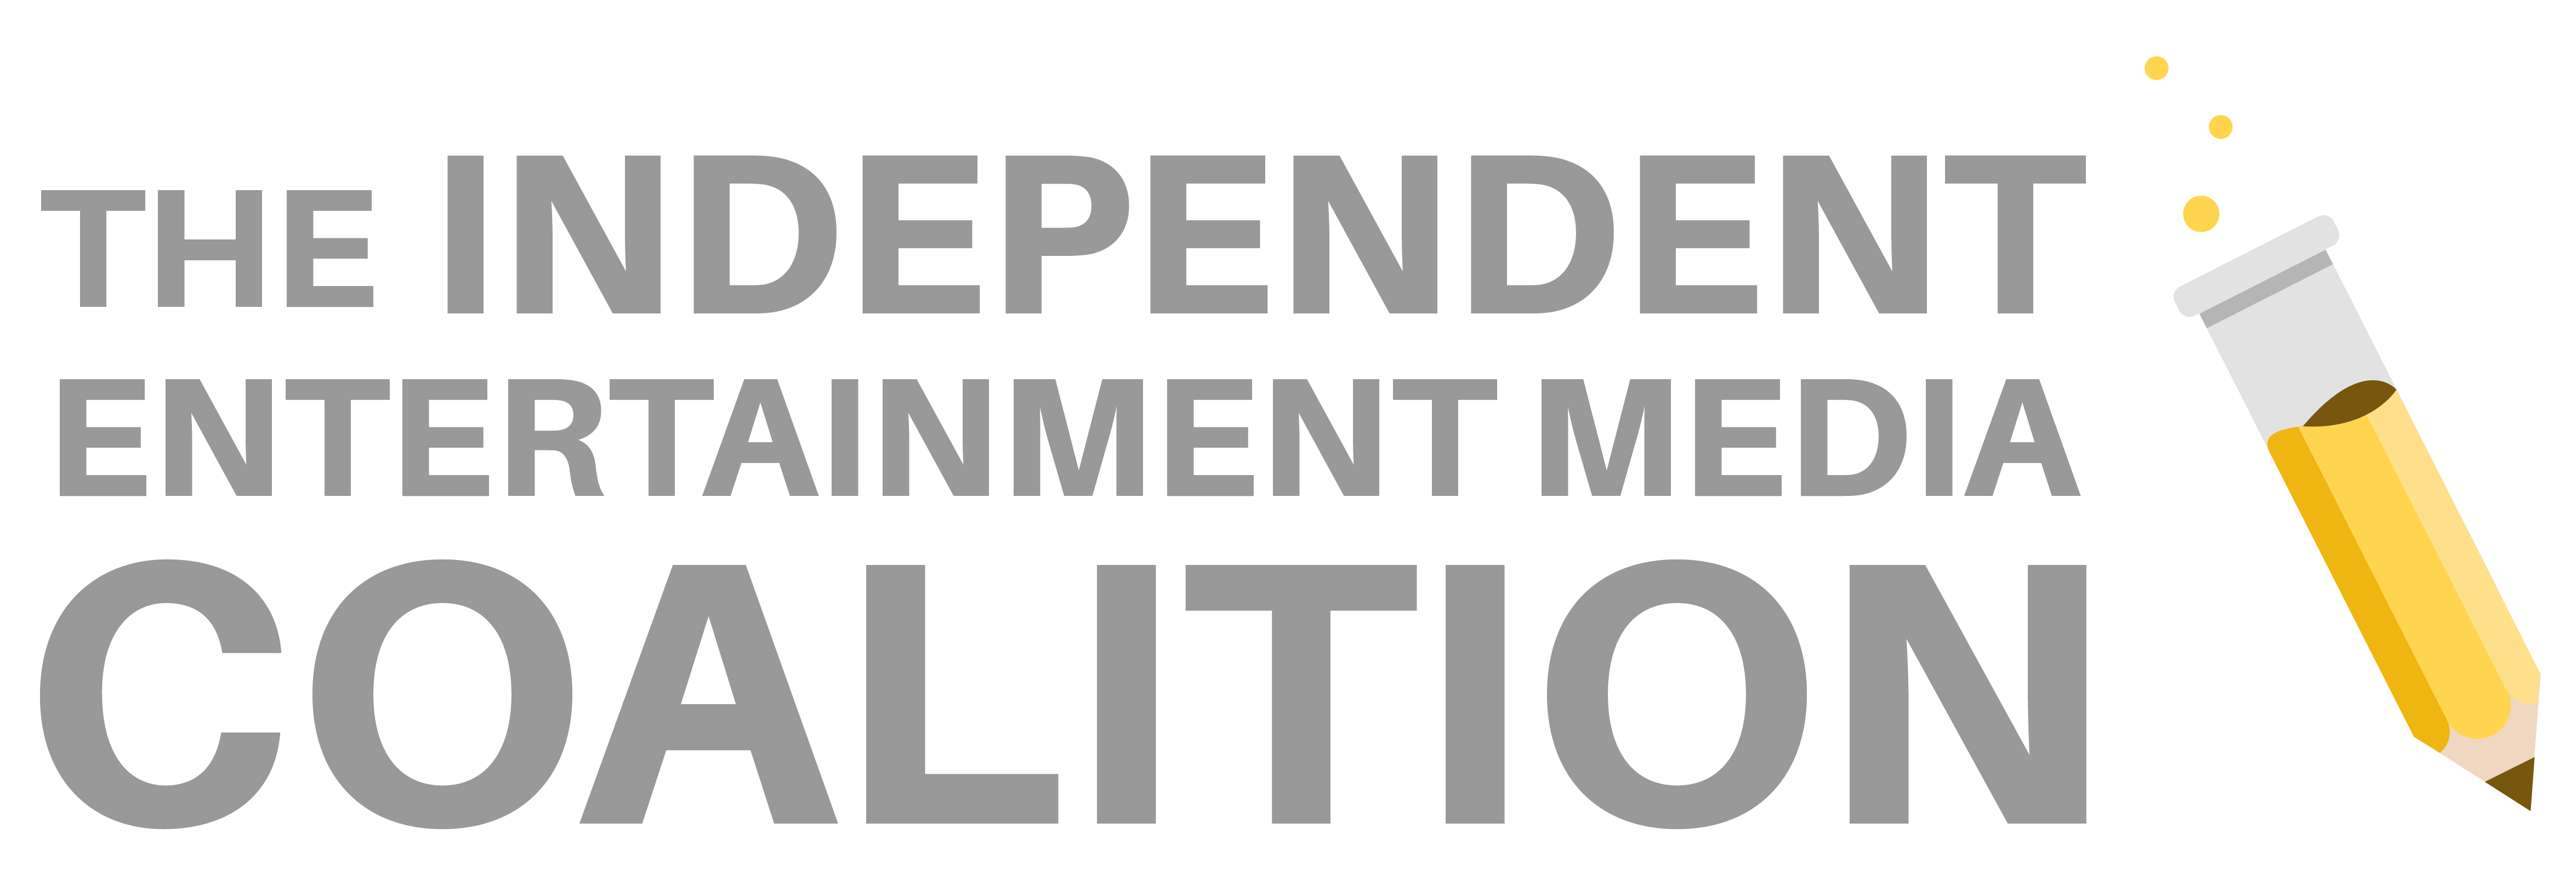 Independent Entertainment Media Coalition